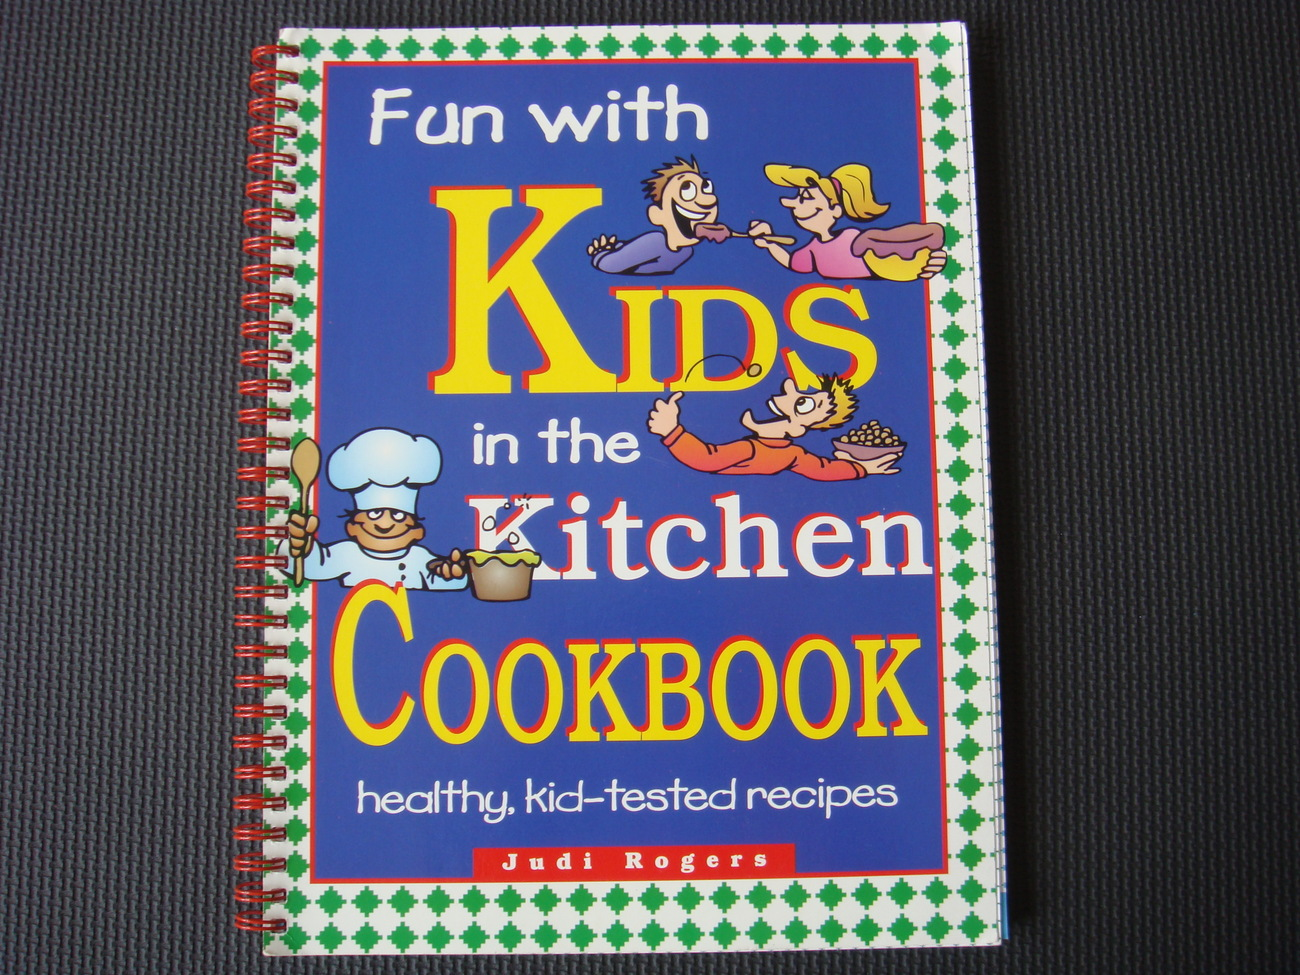 Fun with Kids in the Kitchen COOKBOOK - kid-tested recipes